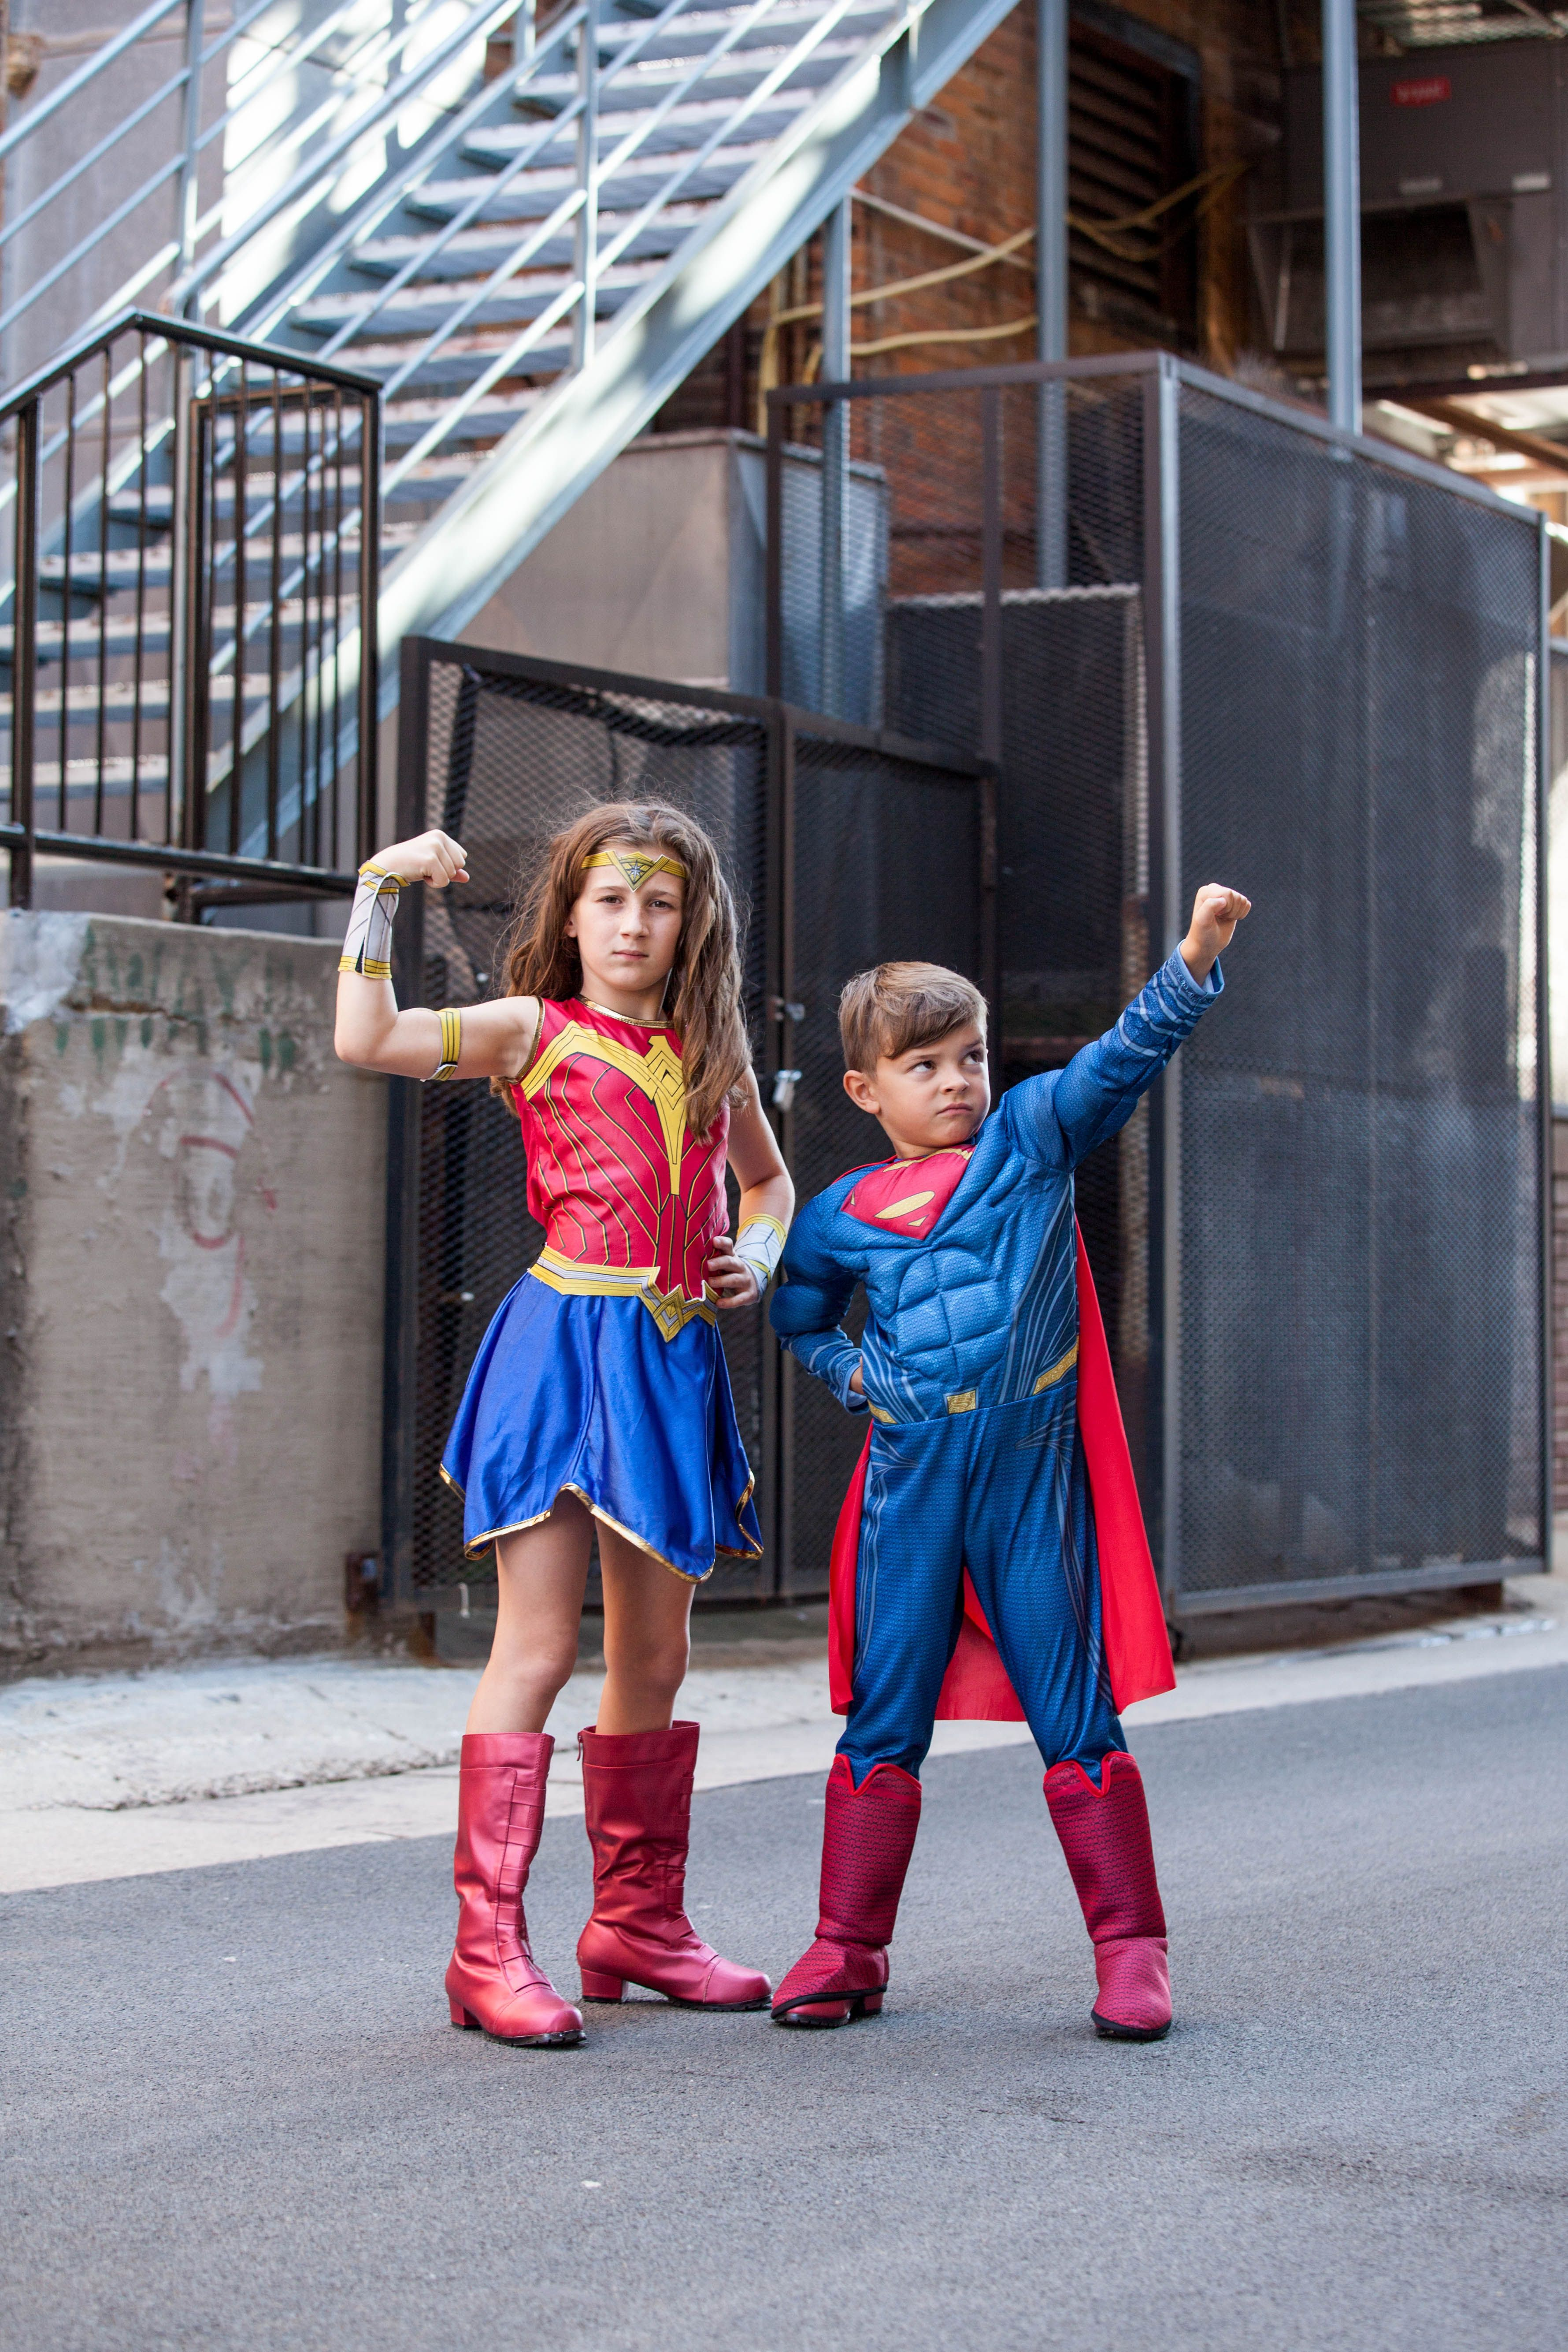 cute kids halloween costume ideas defend the neighborhood together pair up as the dynamic - Unique Kids Halloween Costume